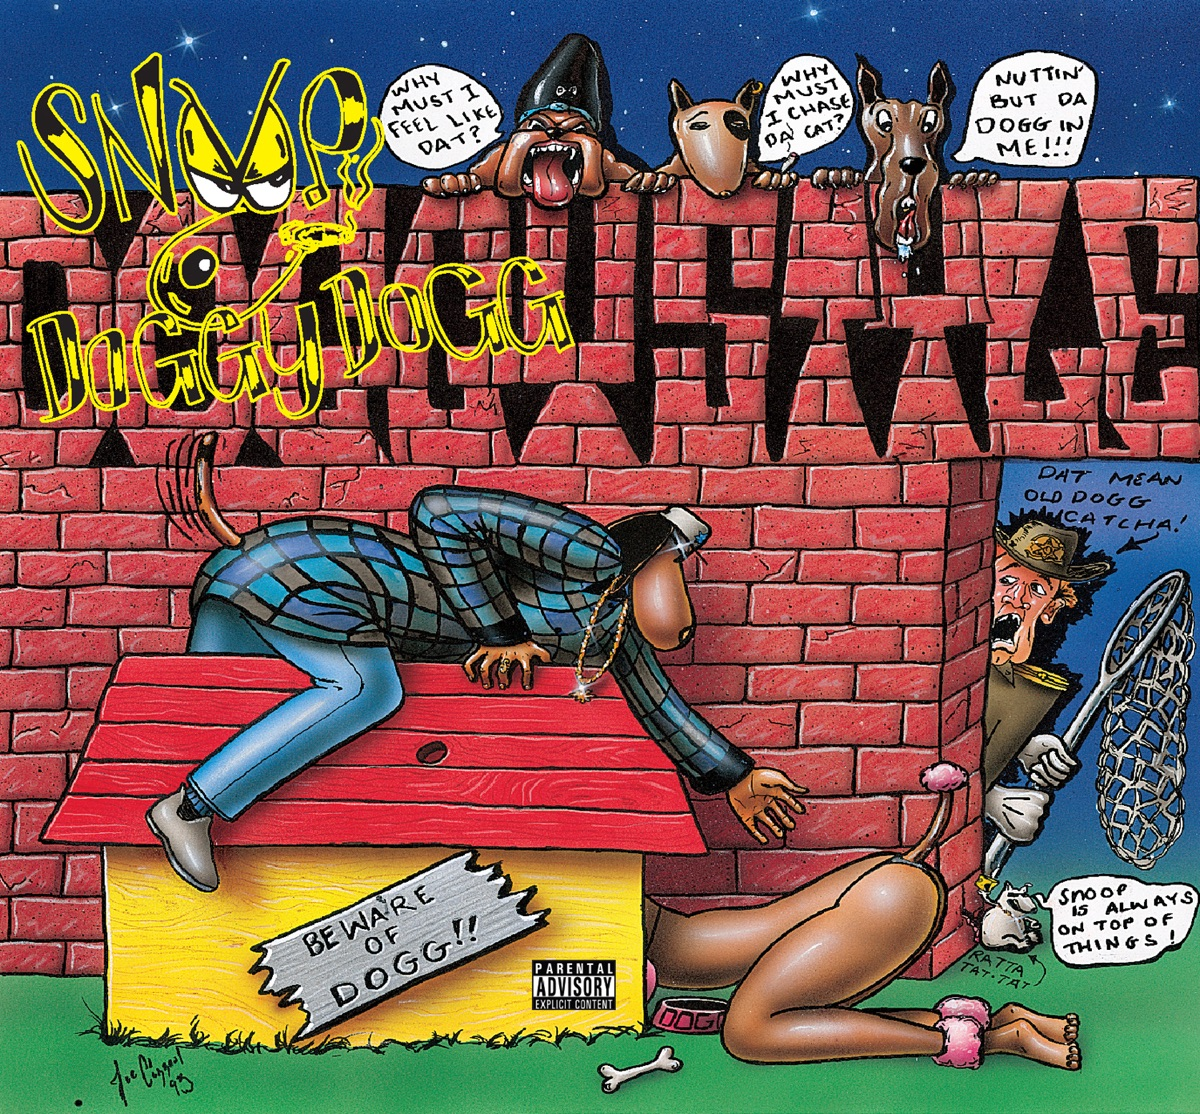 Doggystyle Snoop Dogg CD cover